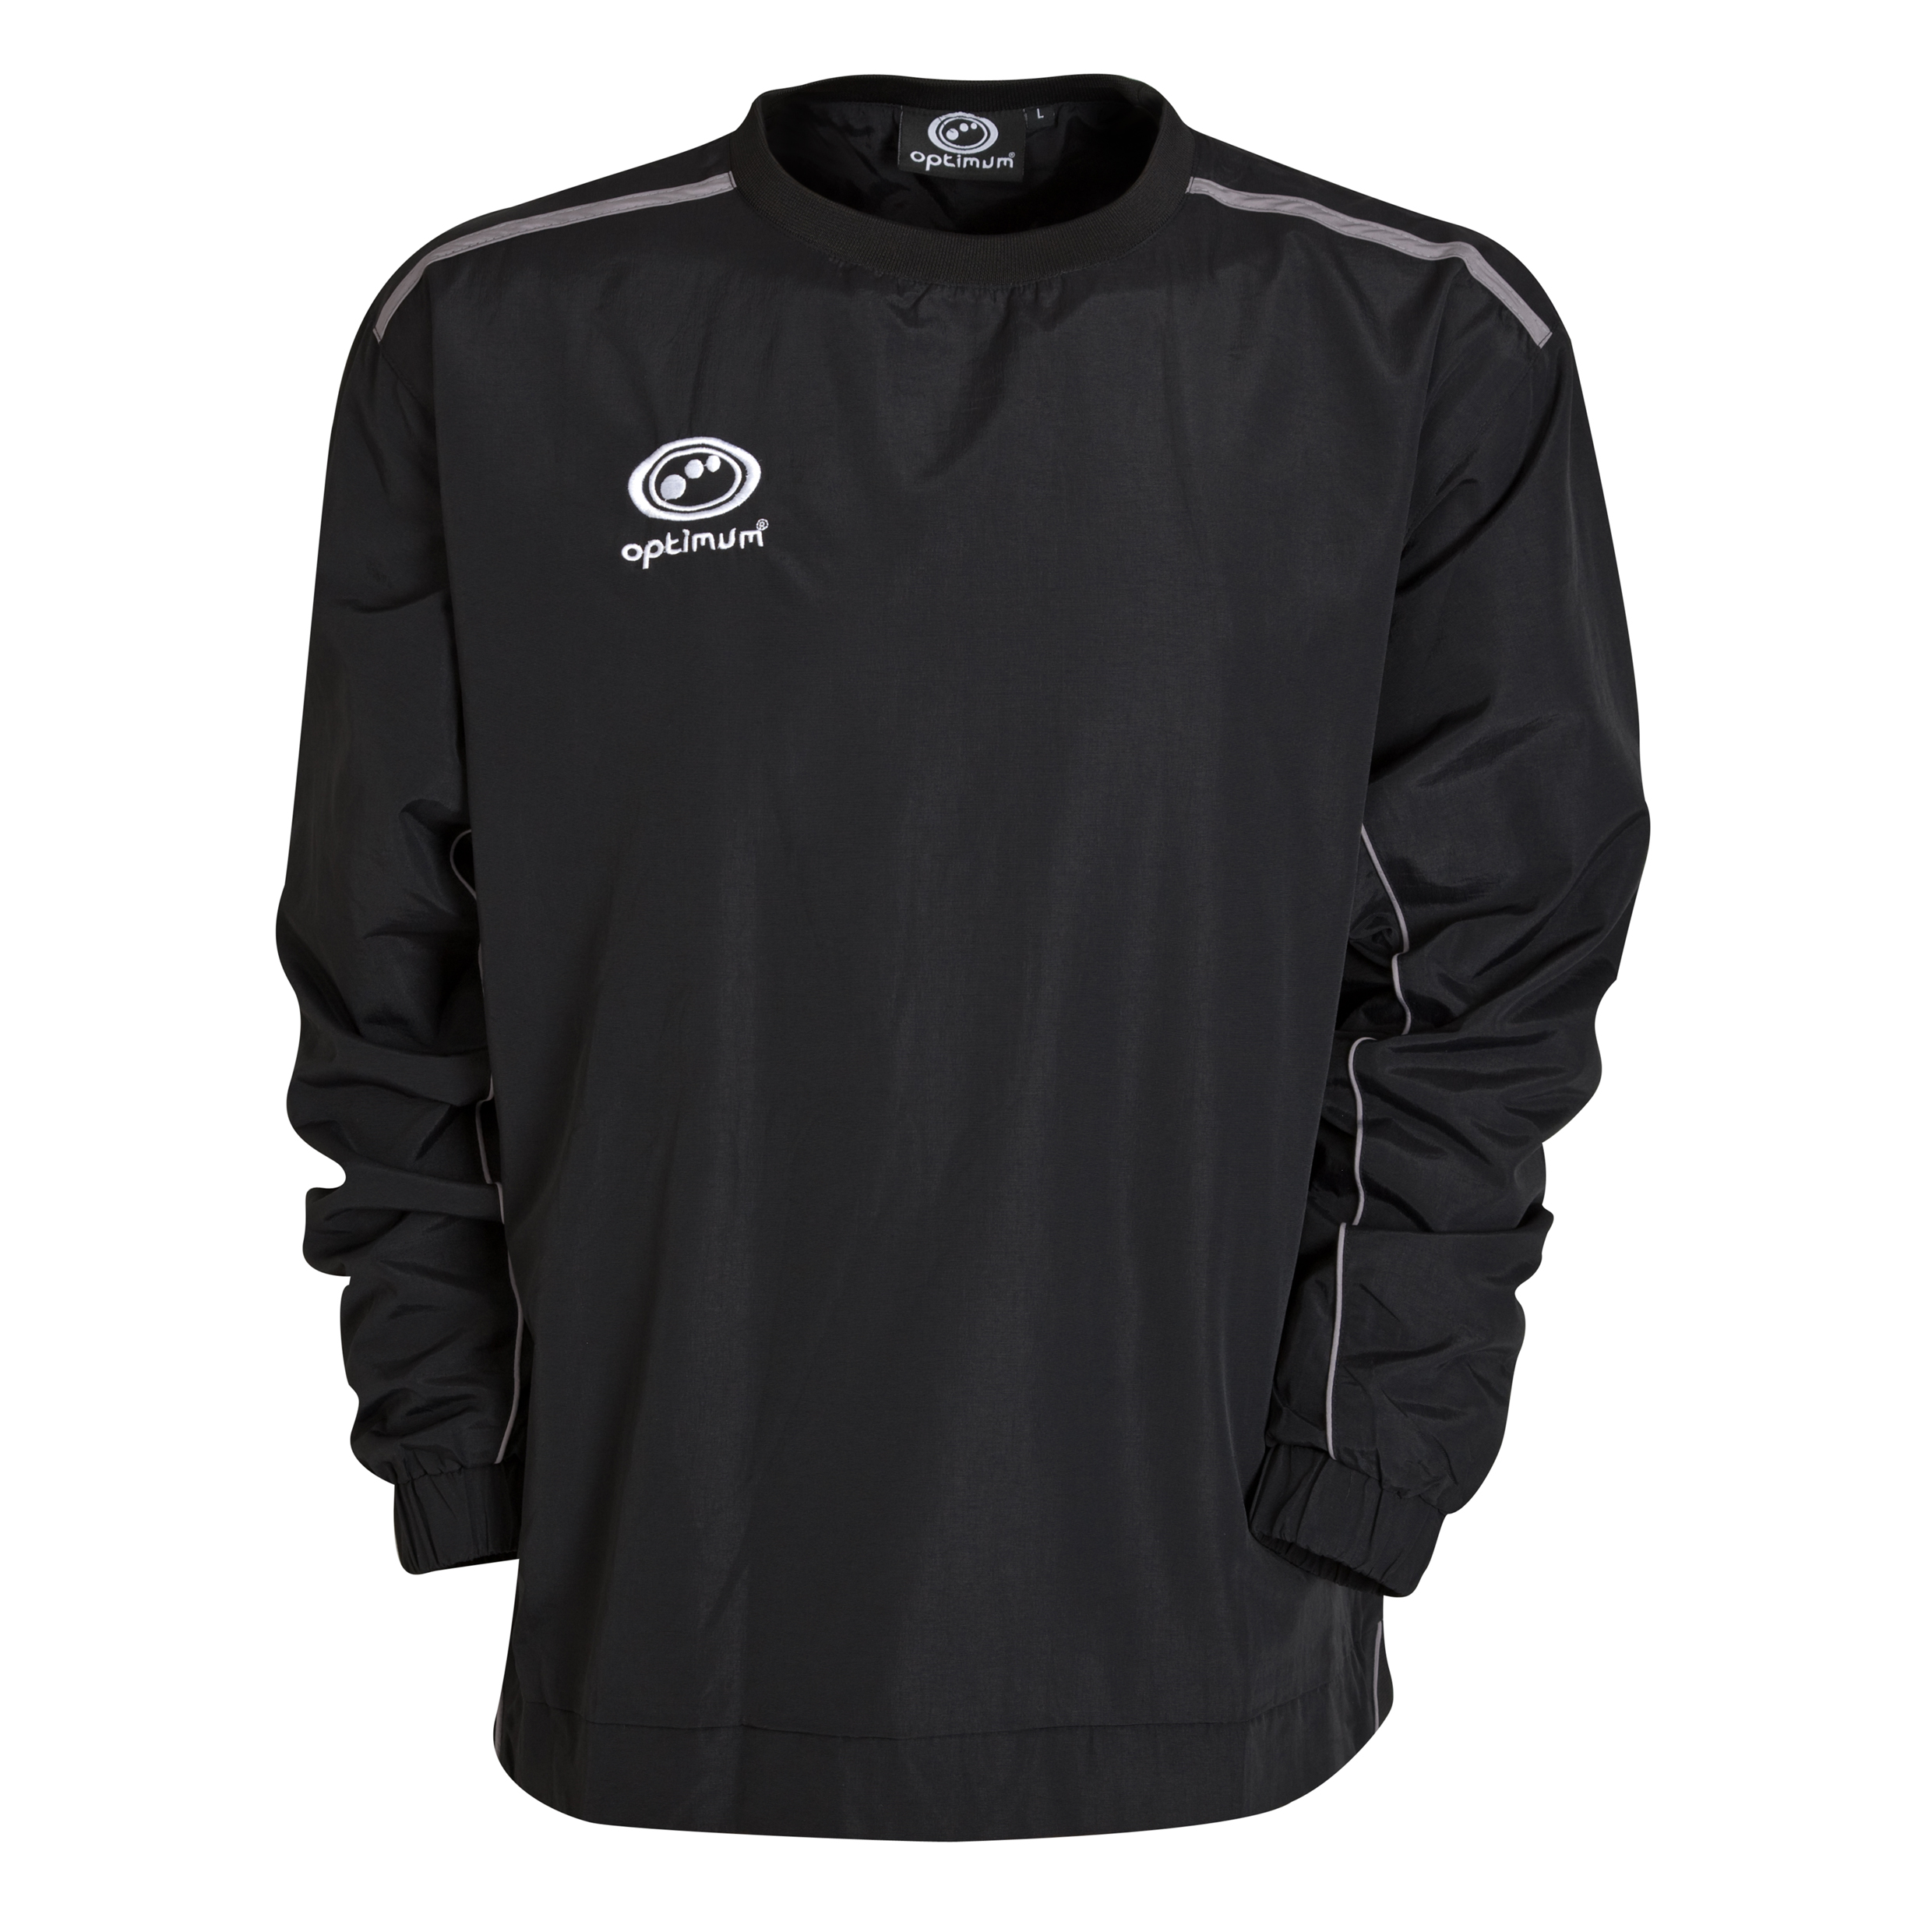 Optimum Eclipse Windbreaker - Black/Silver